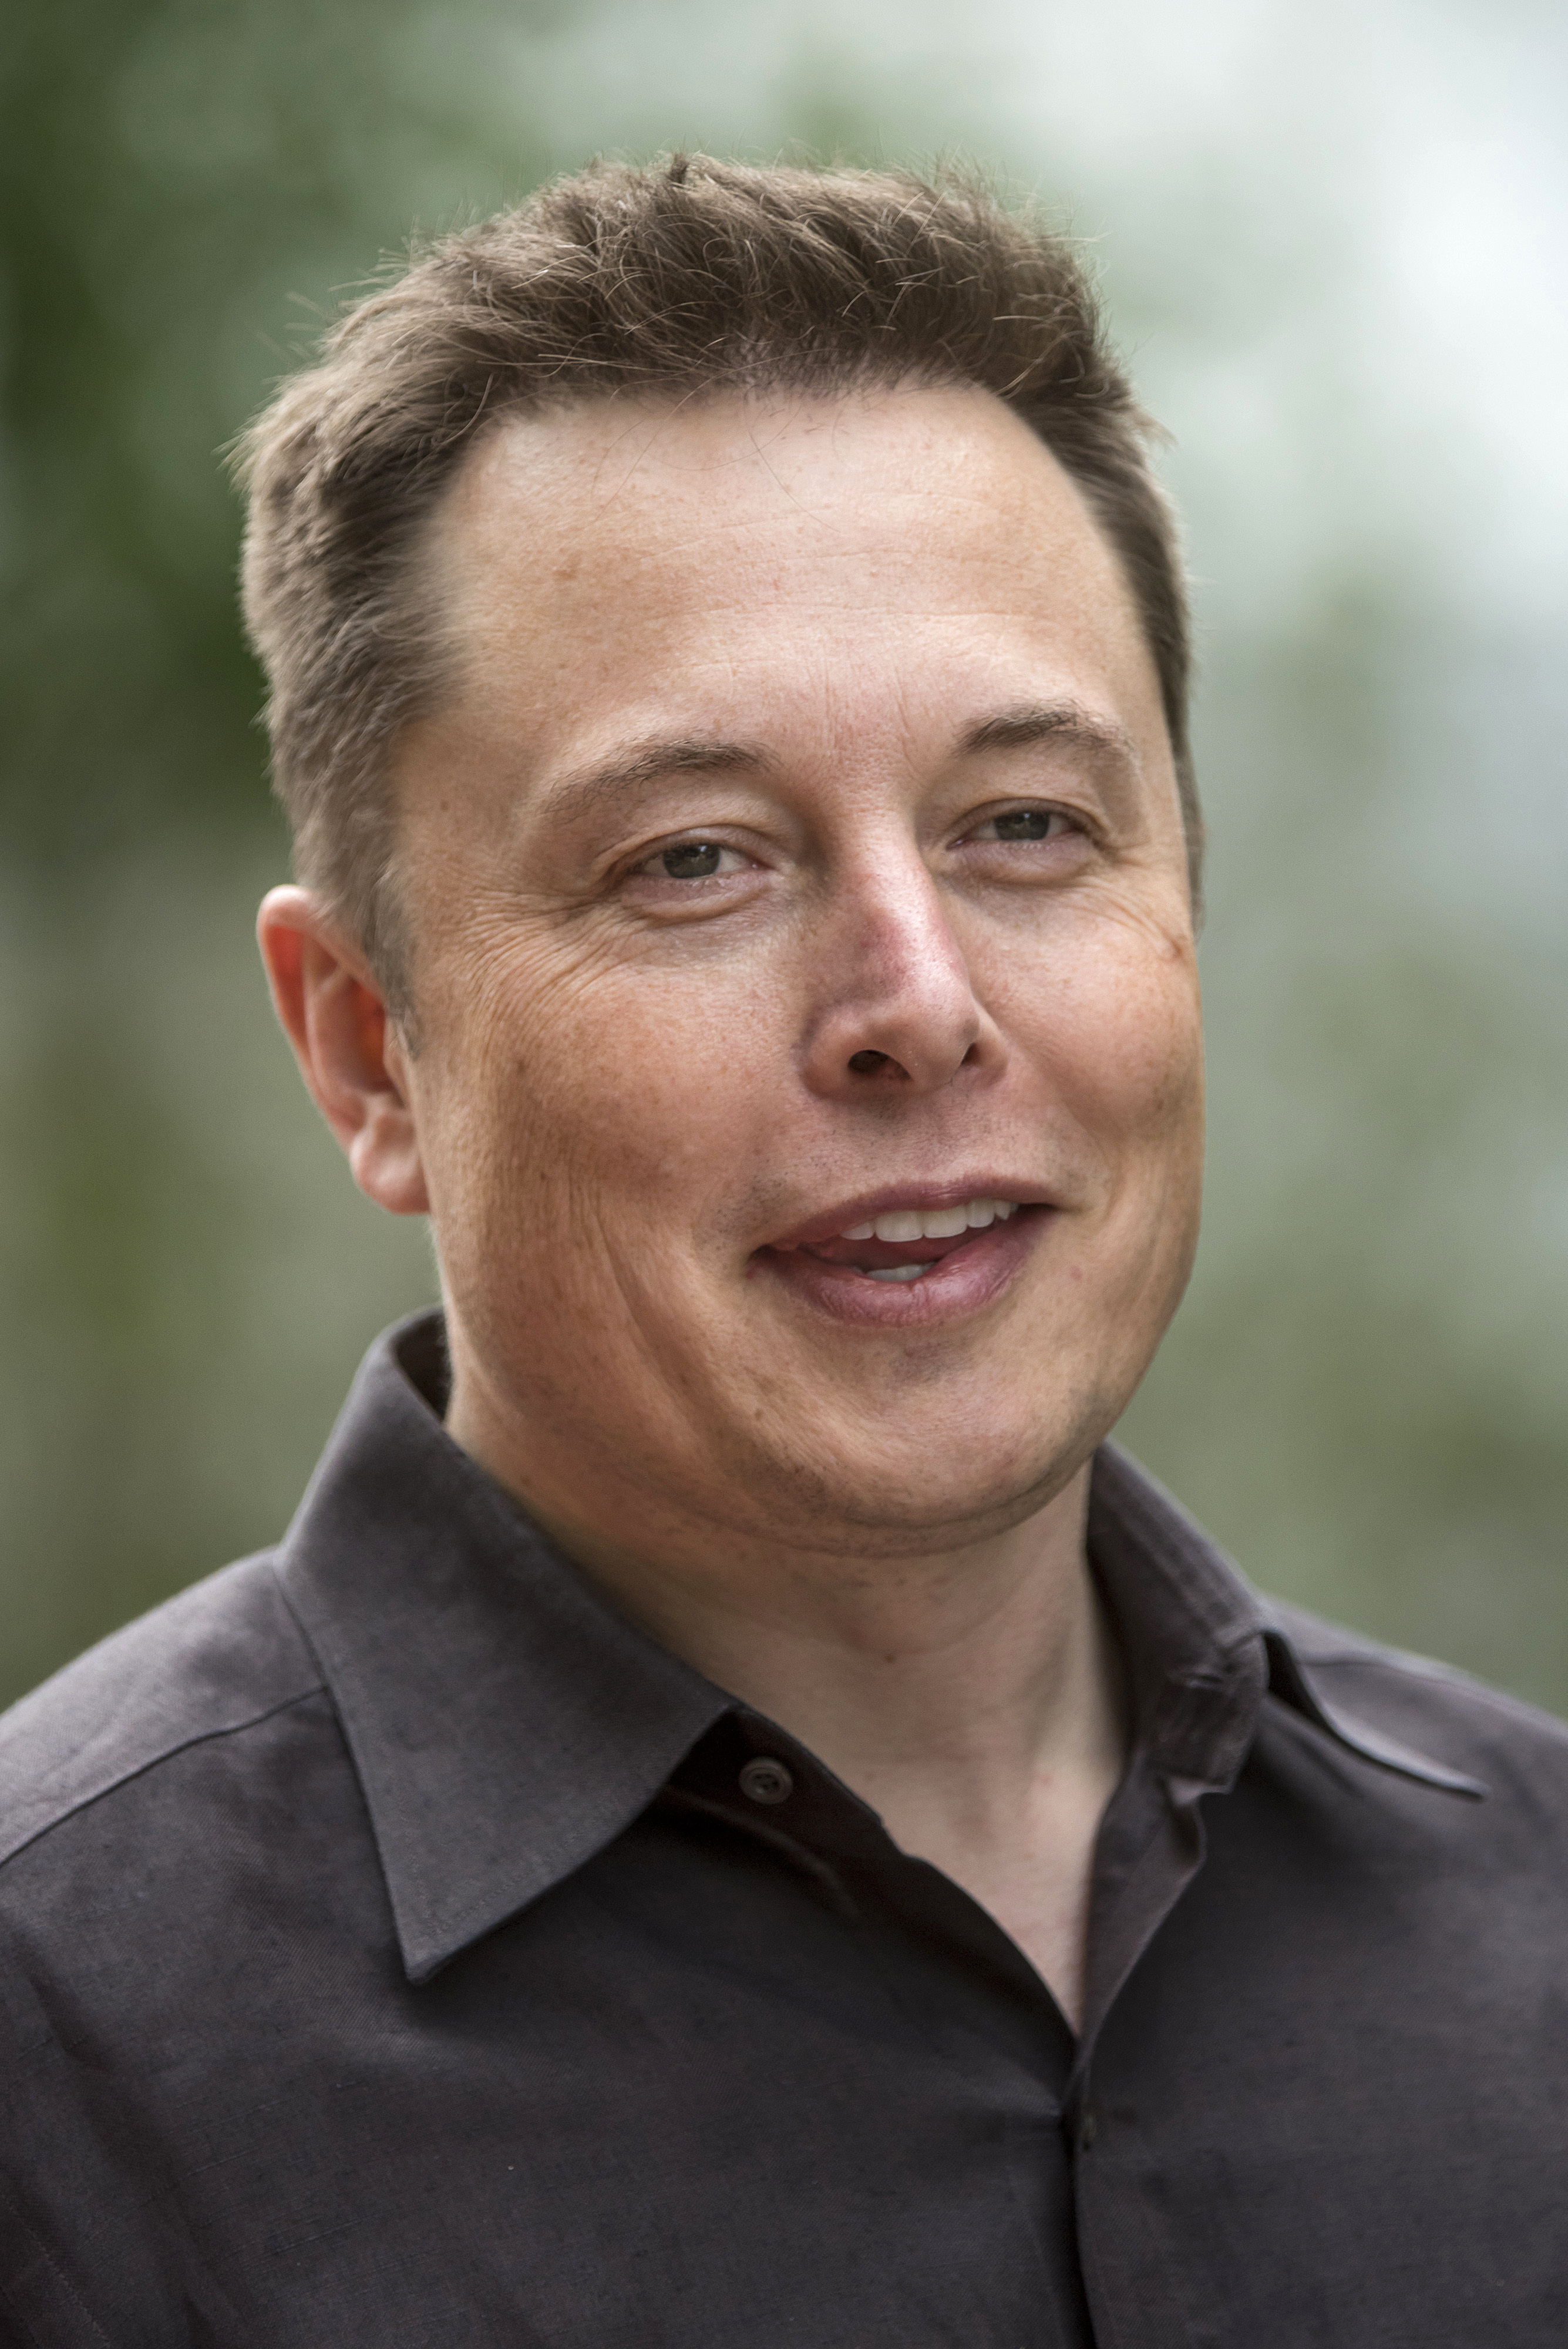 Elon Musk at the Allen & Co. Media and Technology Conference in Sun Valley, Idaho on July 8, 2015.